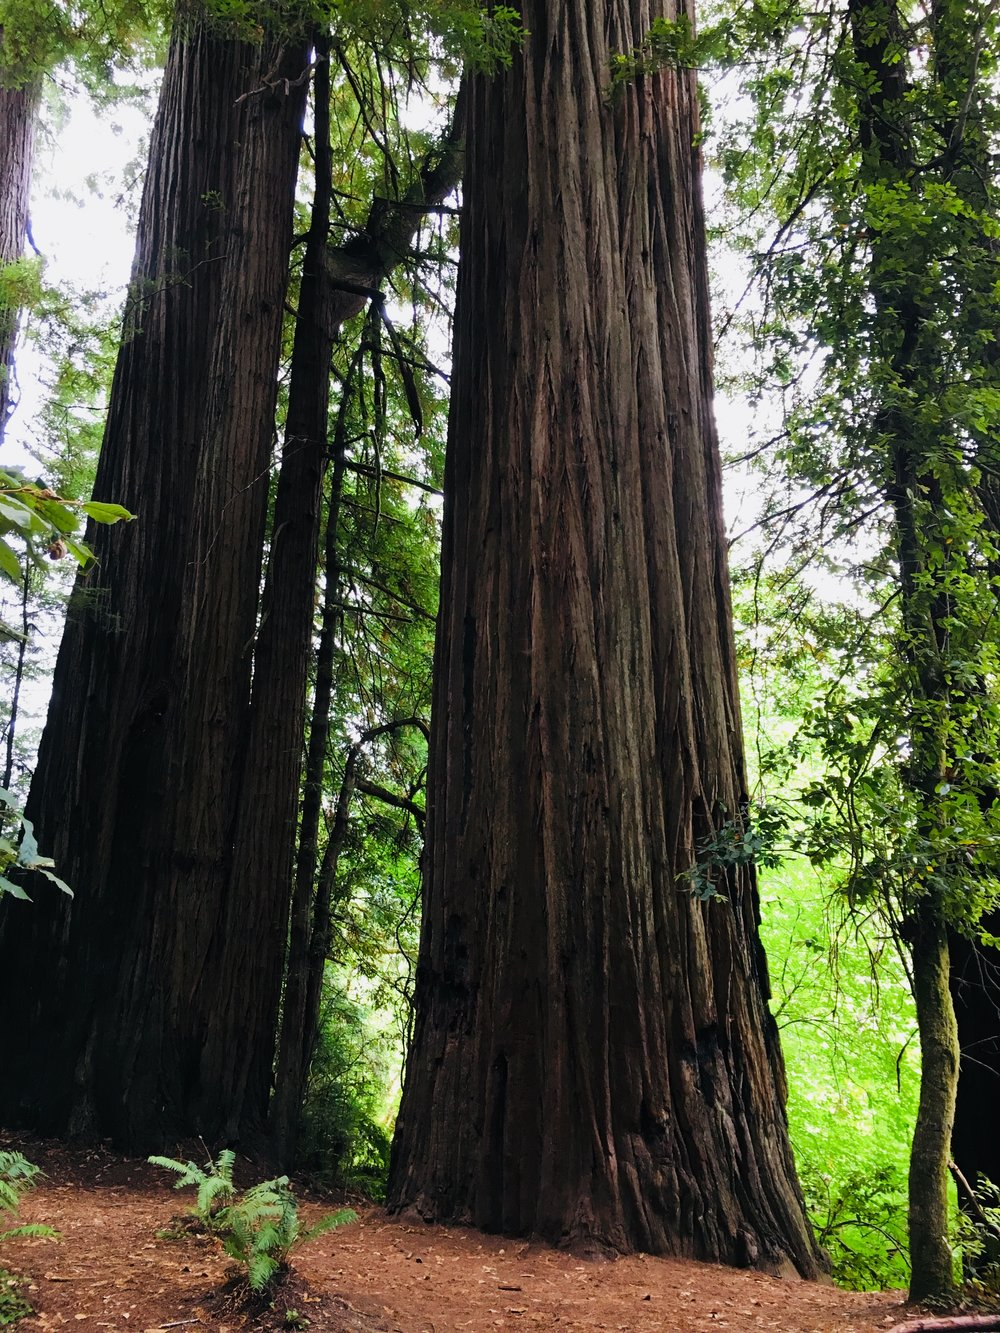 In other news check out these redwood trees! We have been on family vacation near Redwood National Park...it has been quite impressive to say the least!